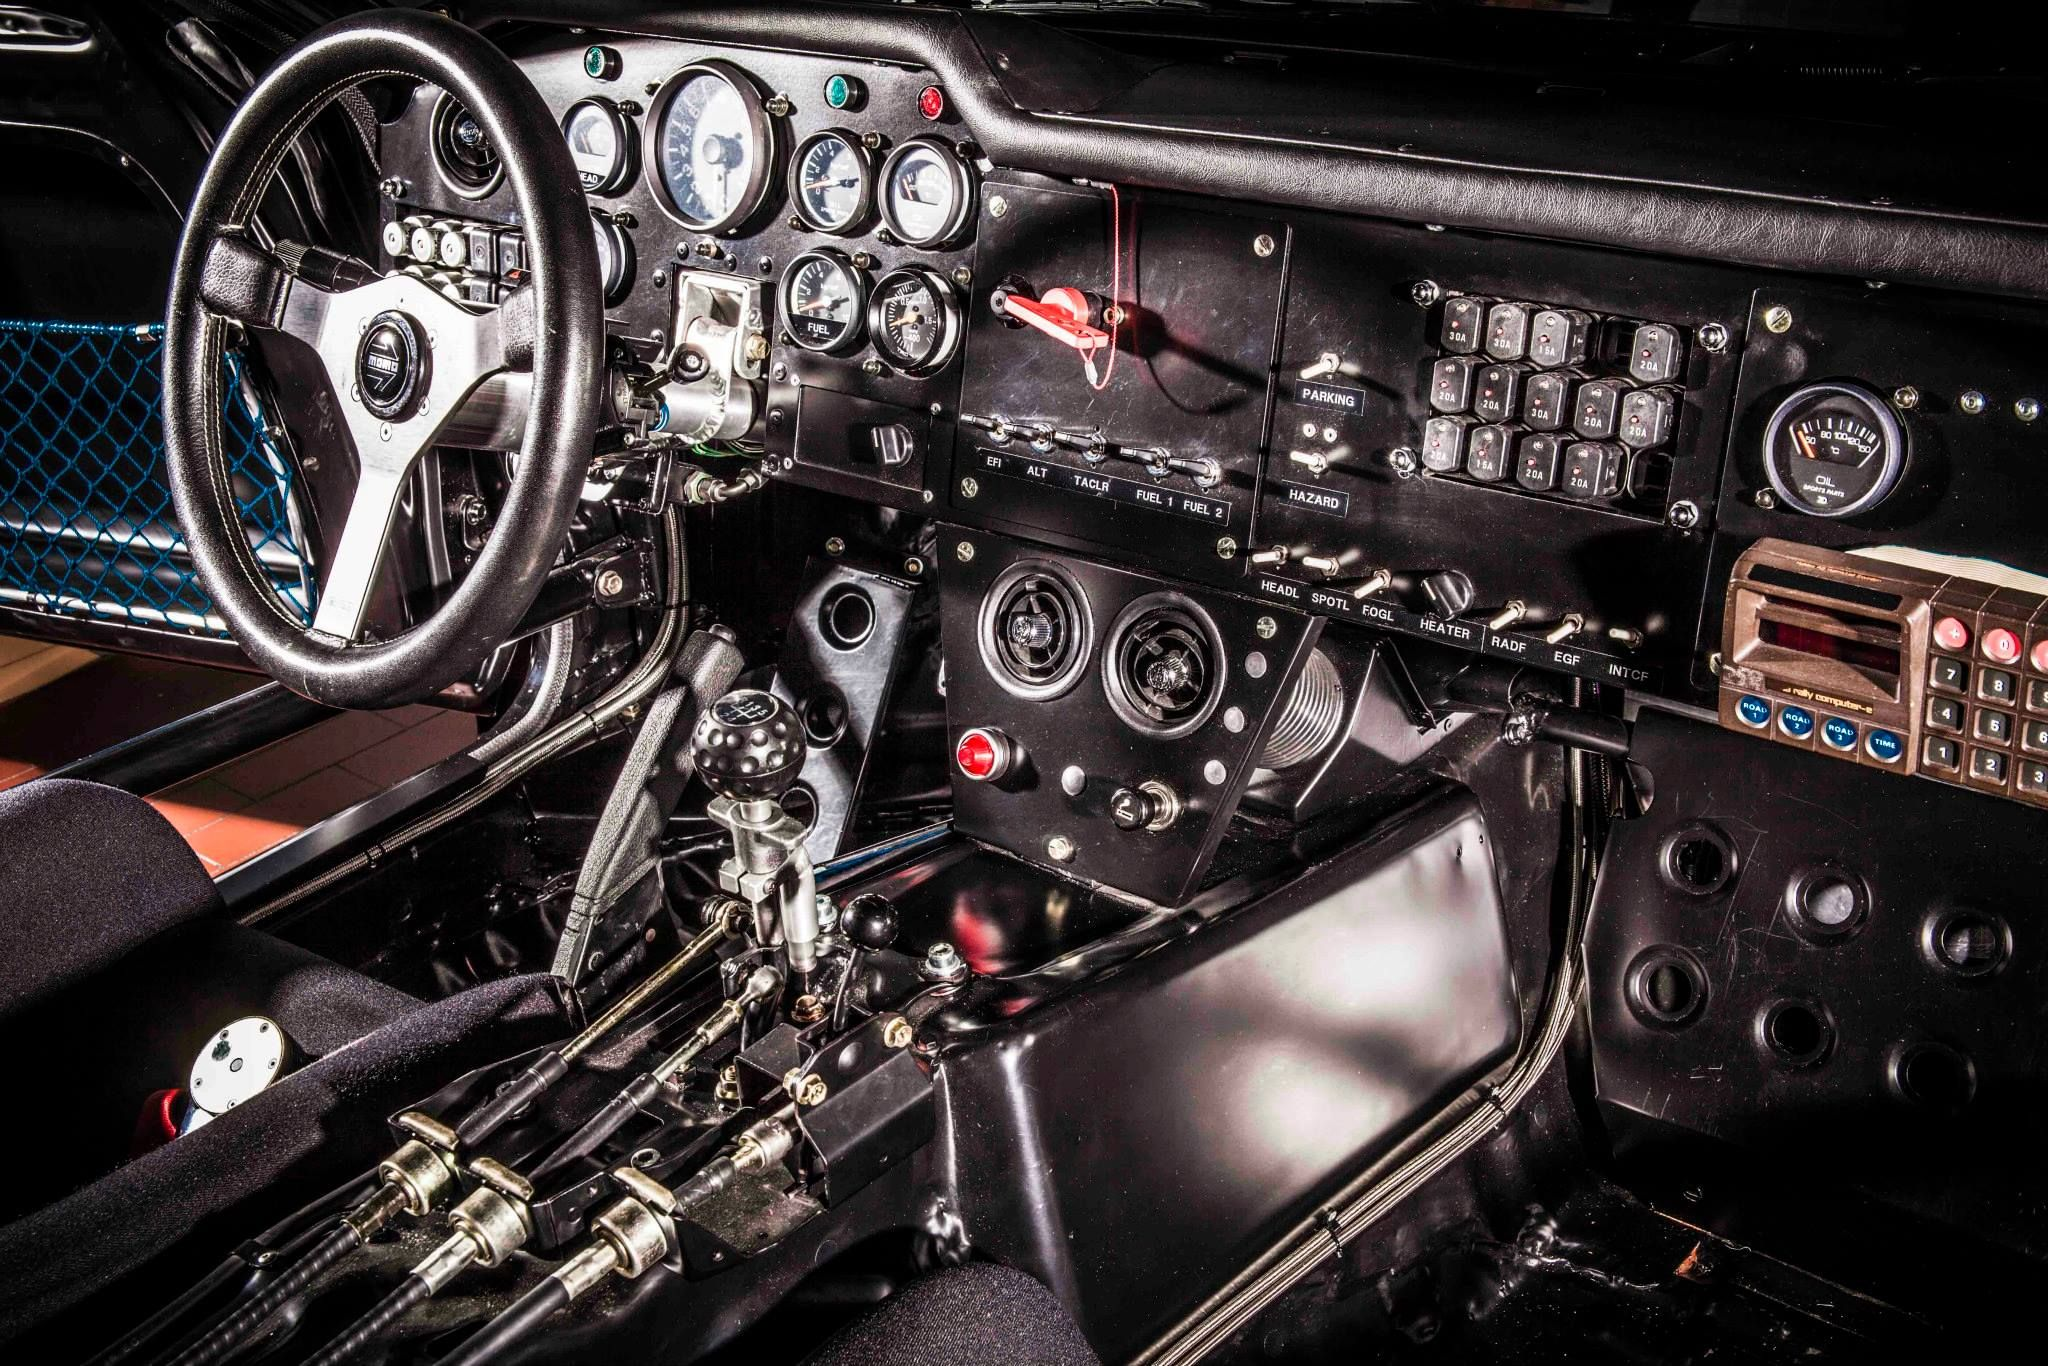 Toyota Mr2 Rally Group B With Golf Gti Golfball Gearknob The